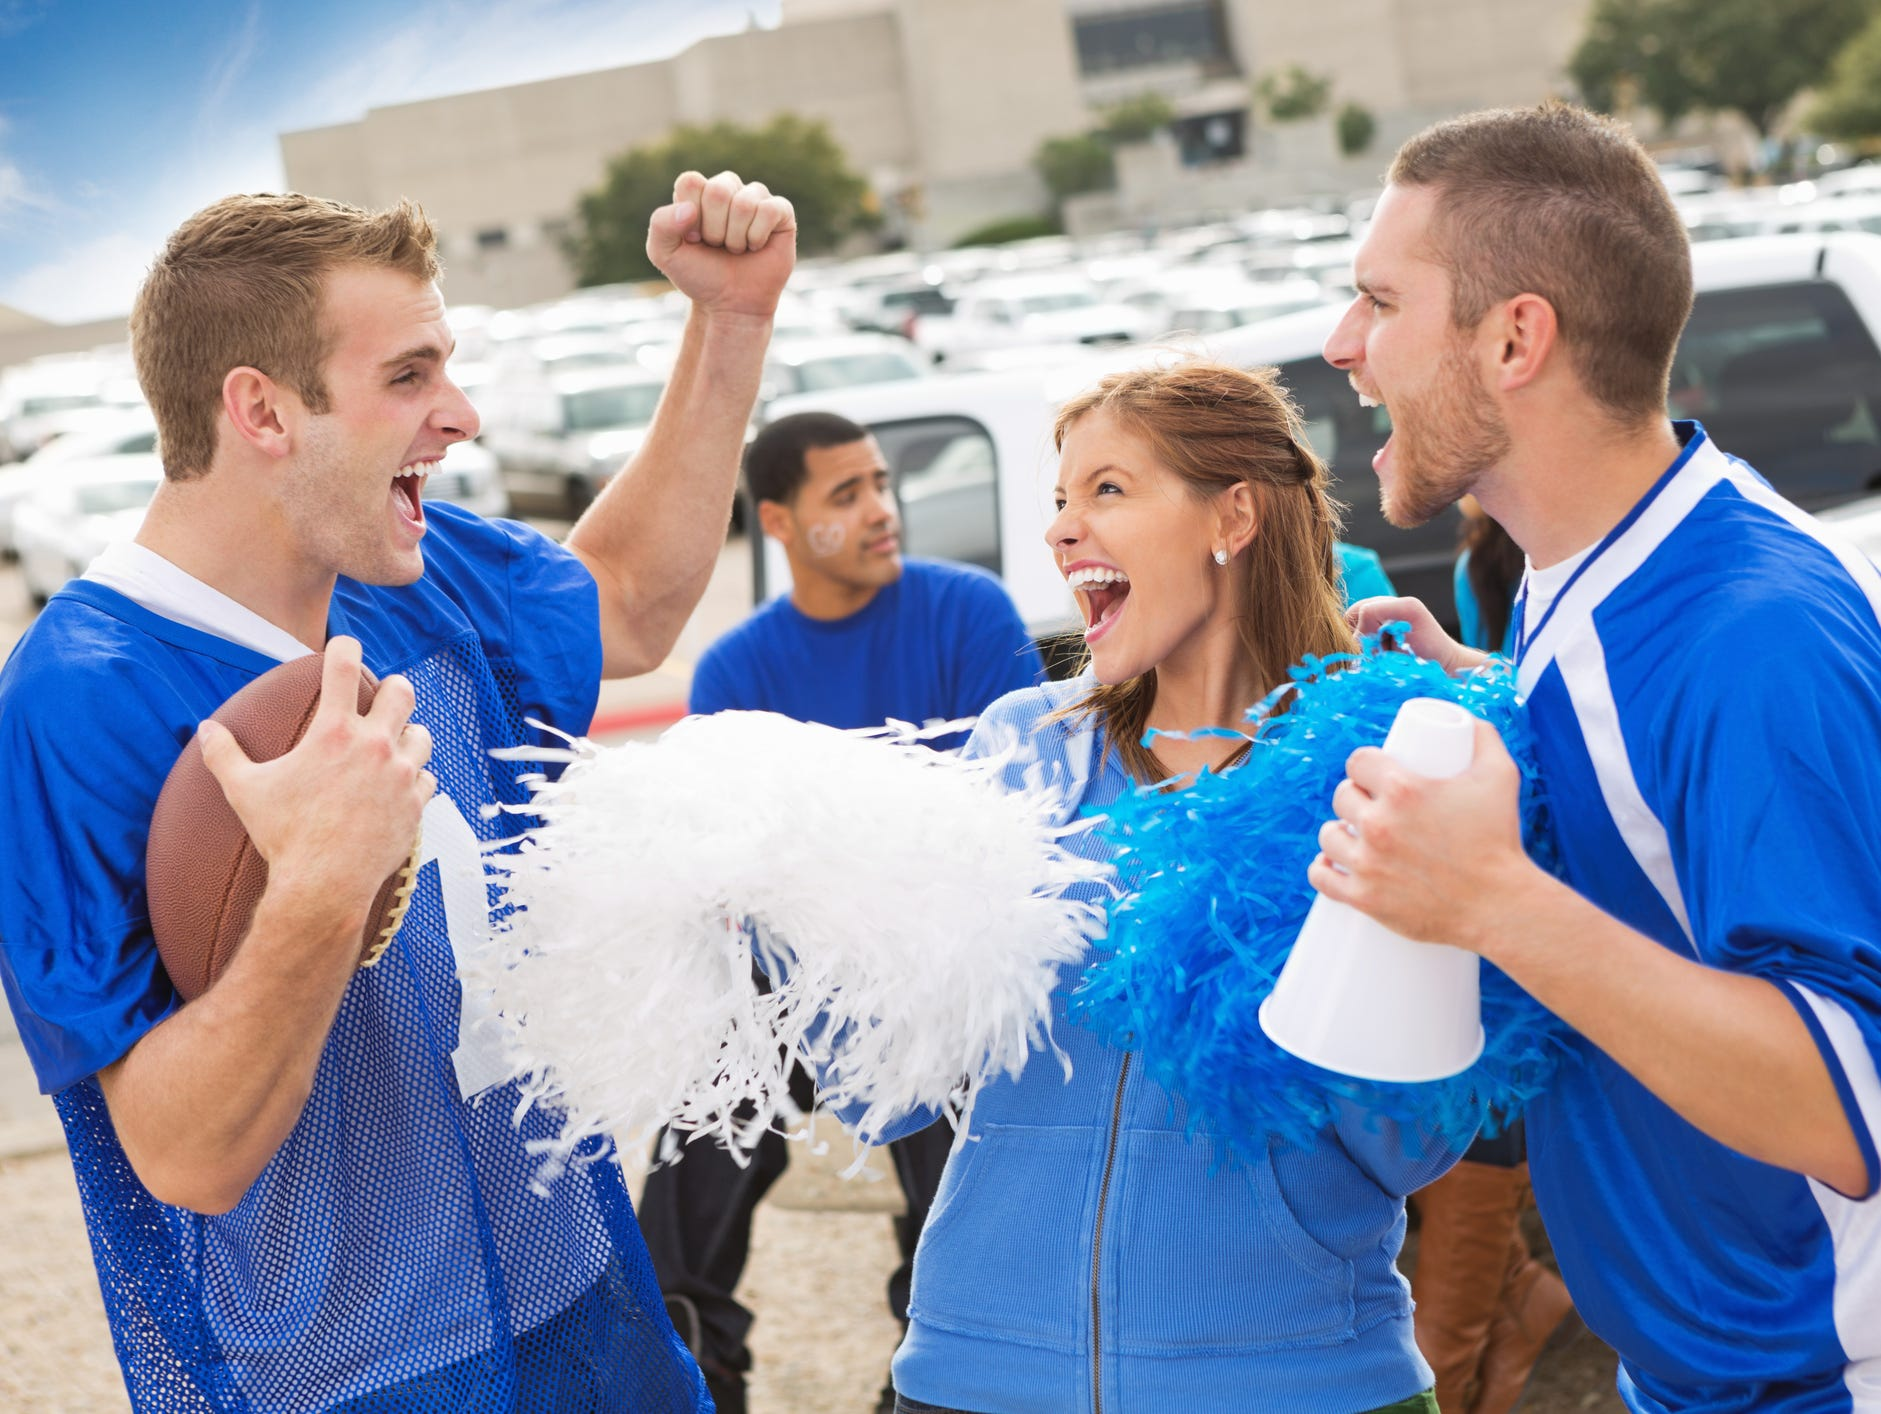 With college football season in full force, can we guess your role at the tailgate?